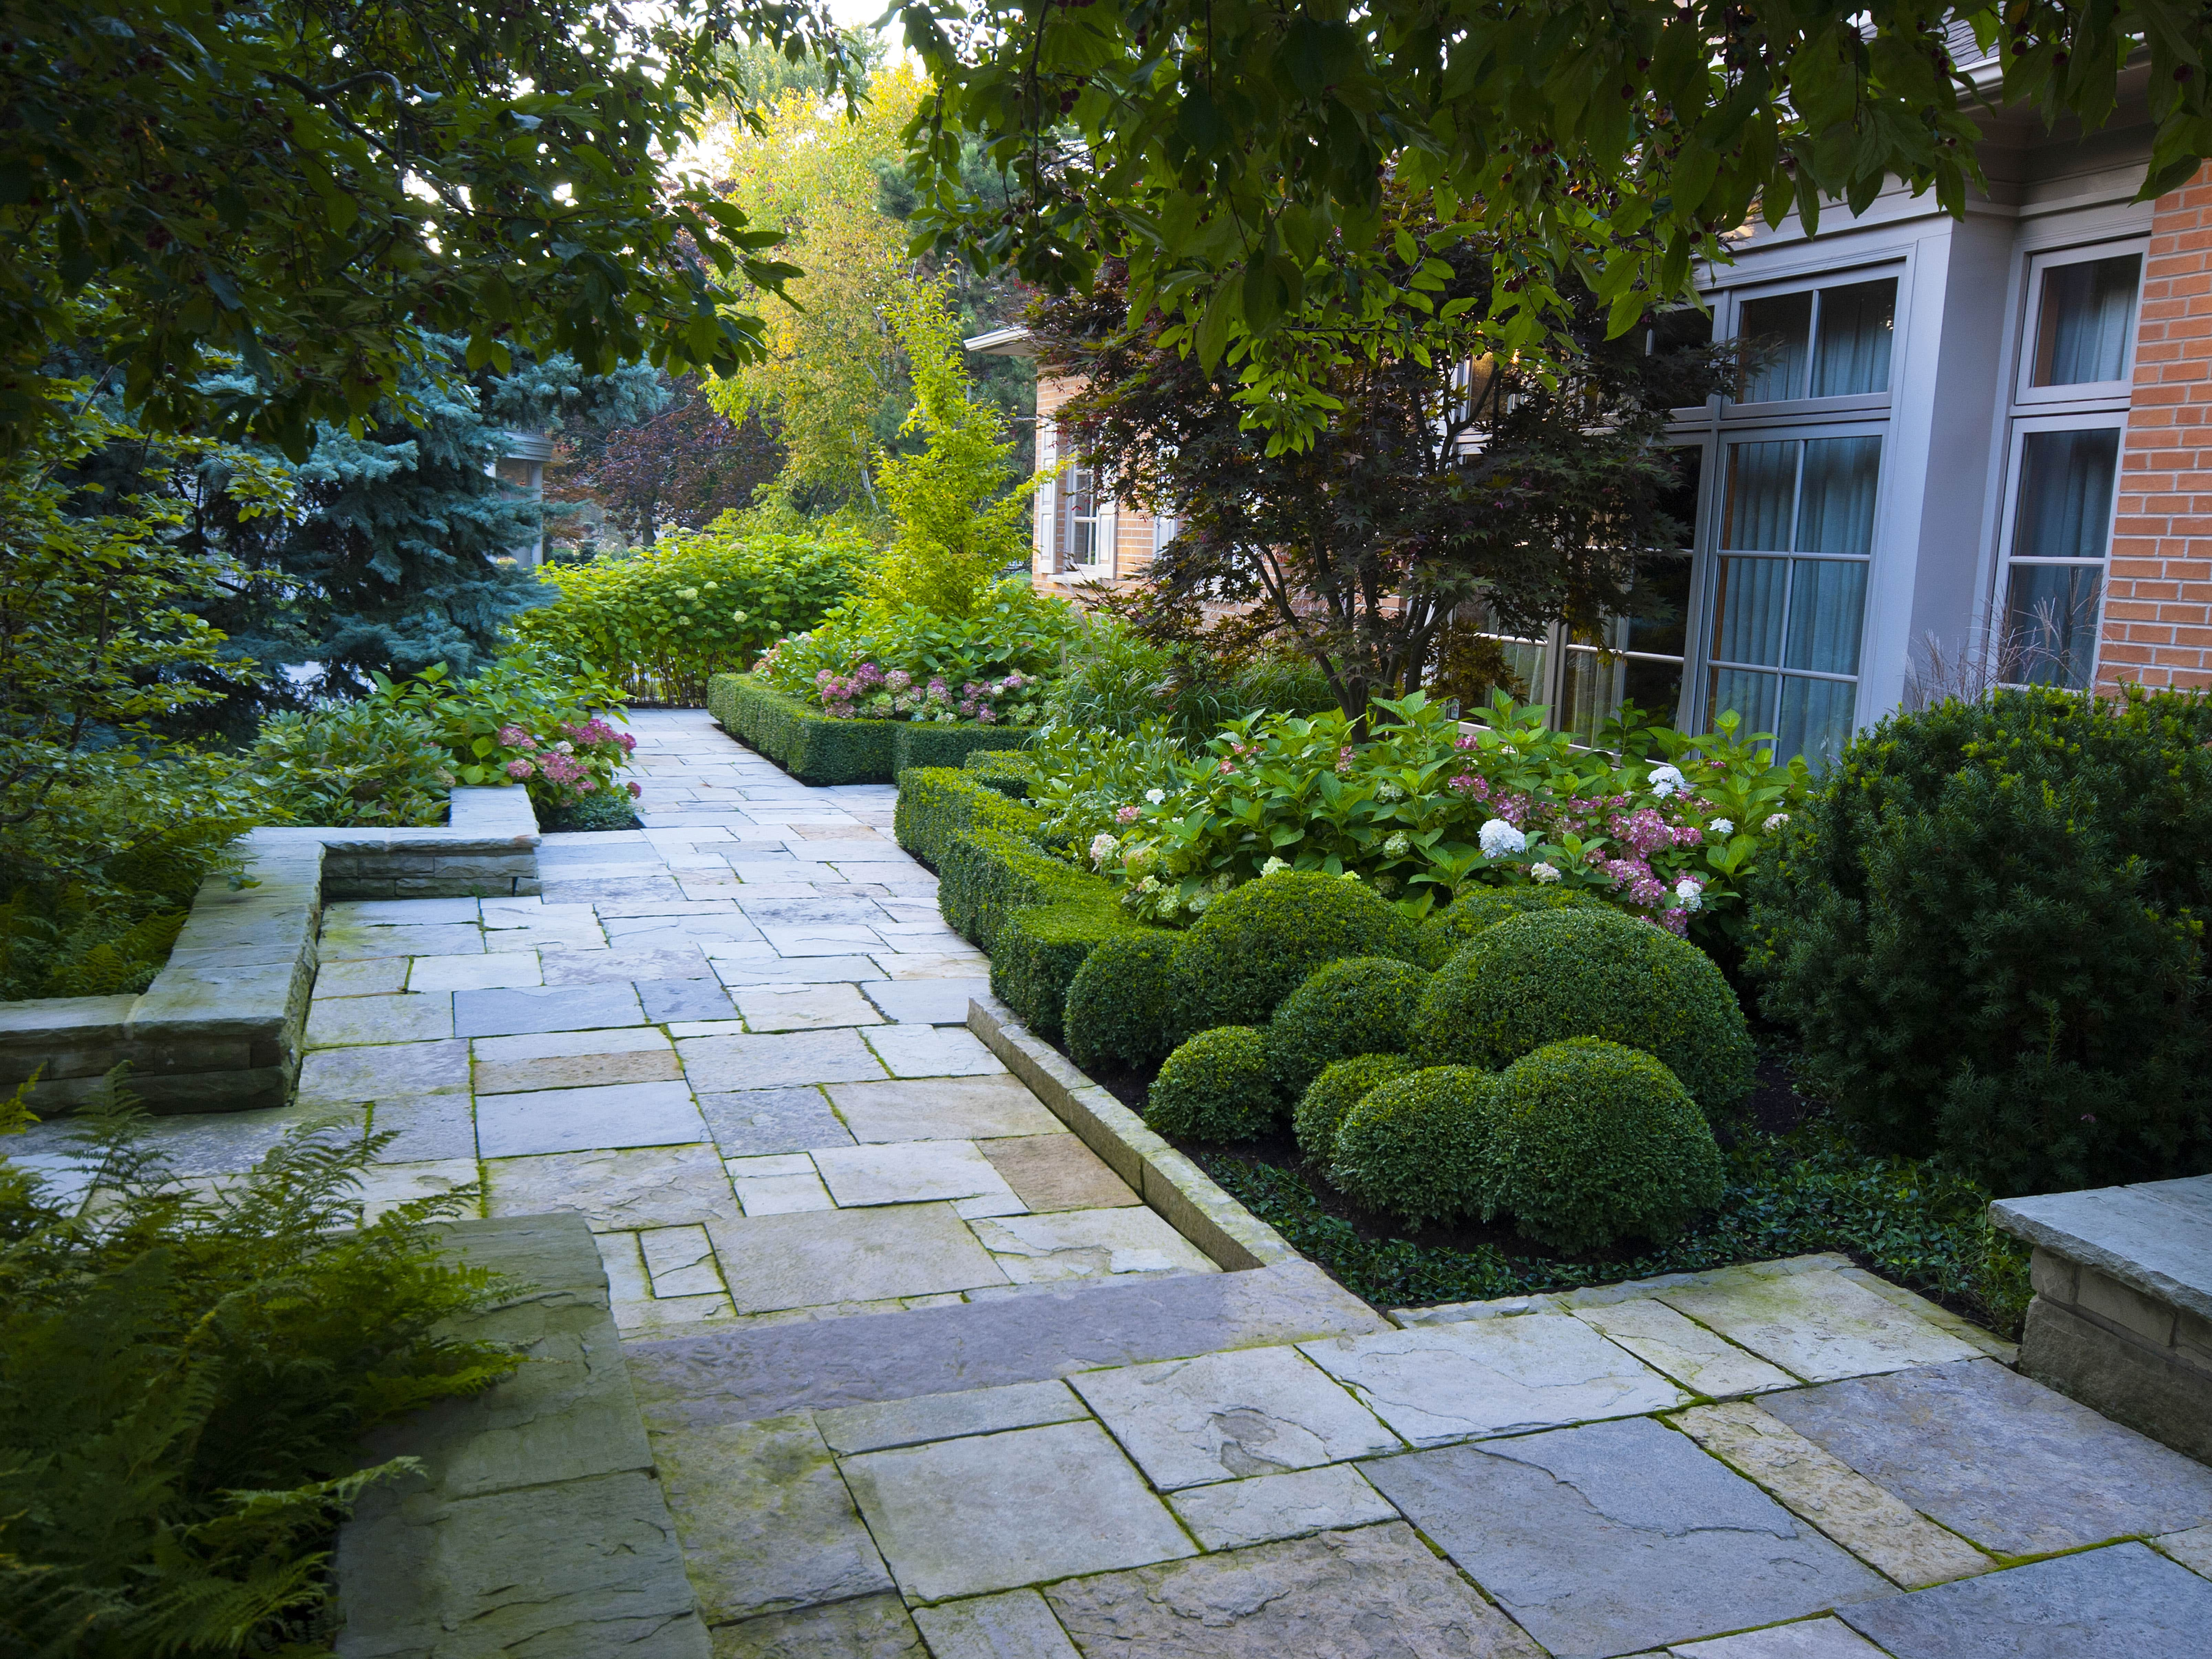 Service: Pruning. Well maintained garden with carefully pruned bushes and flowers.